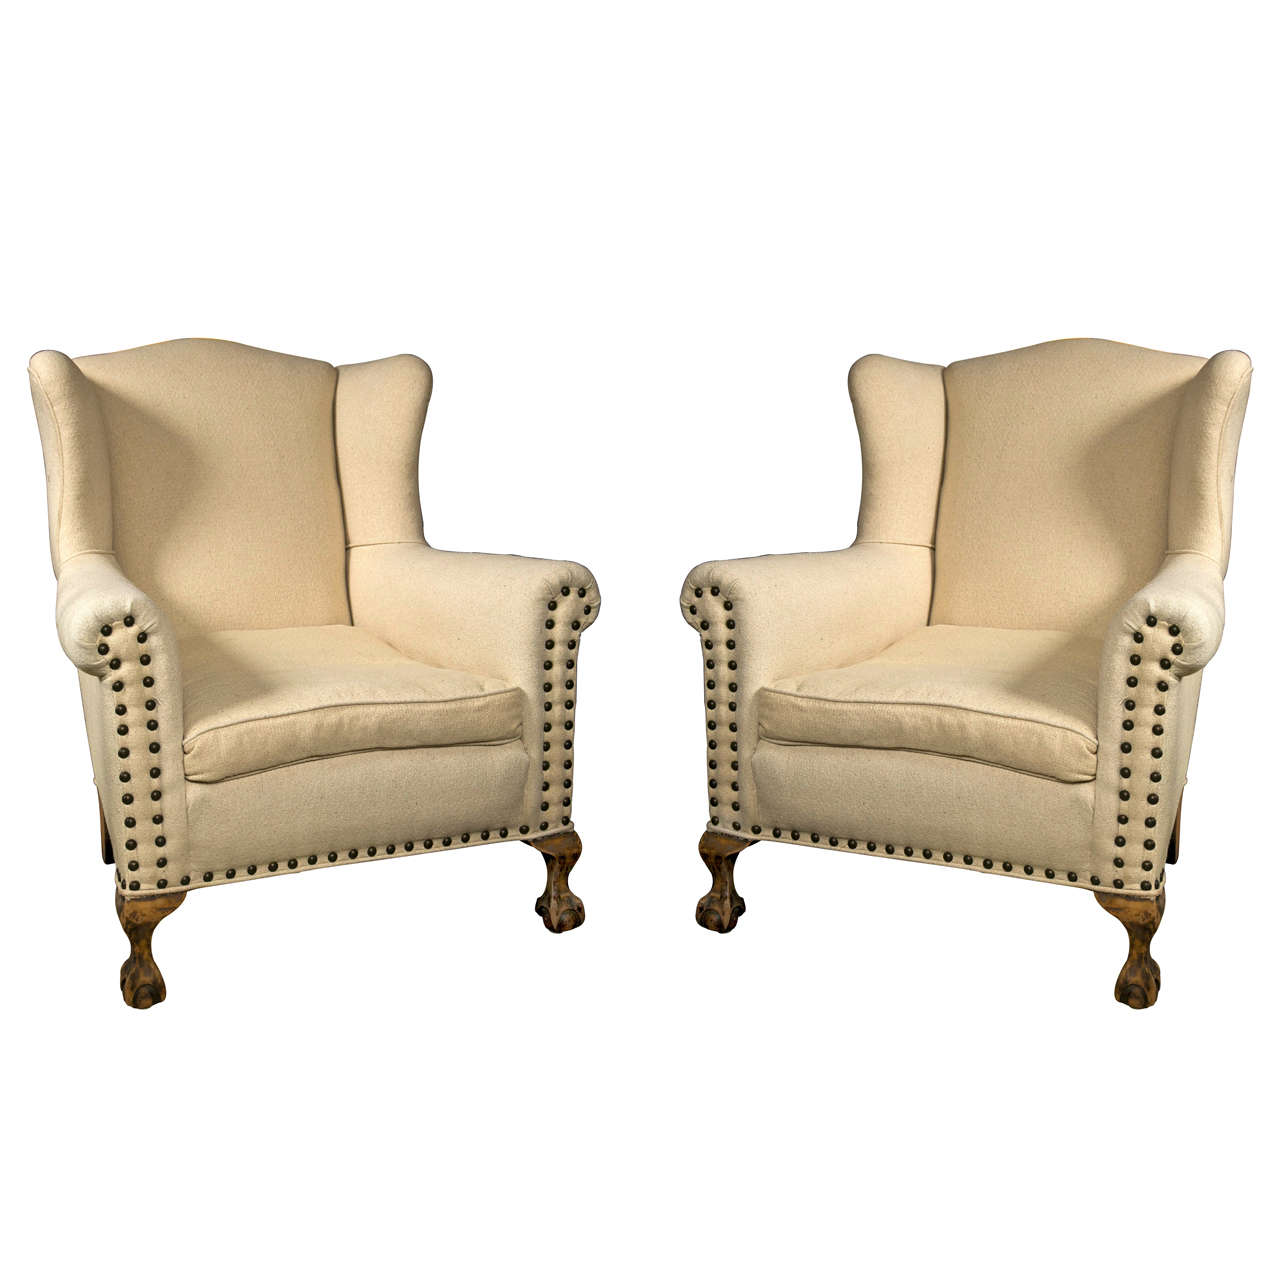 Wingback chairs sale design ideas 1930 s wing chairs at for Chair design 1930